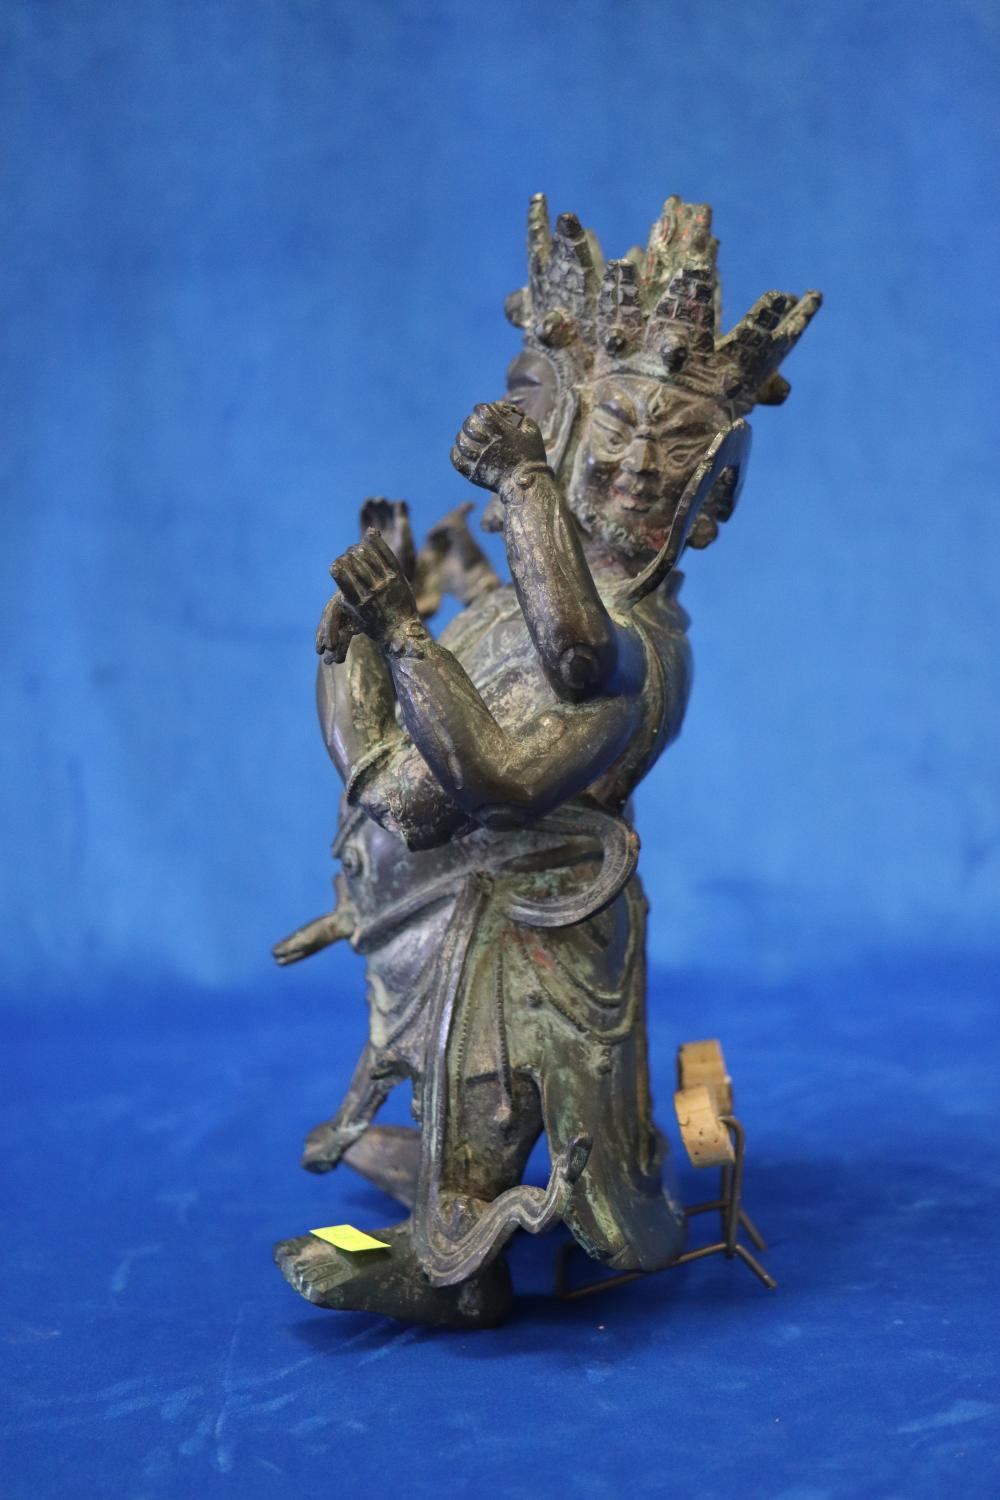 CHINESE BRONZE DEITY FIGURE, MING DYNASTY, DEITY HAS 3 FACES AND 6 ARMS EACH HOLDING AN ATTRIBUTE, 32CM H, FROM THE COLLECTION OF ROSS GORDON, SOME LOSSES,